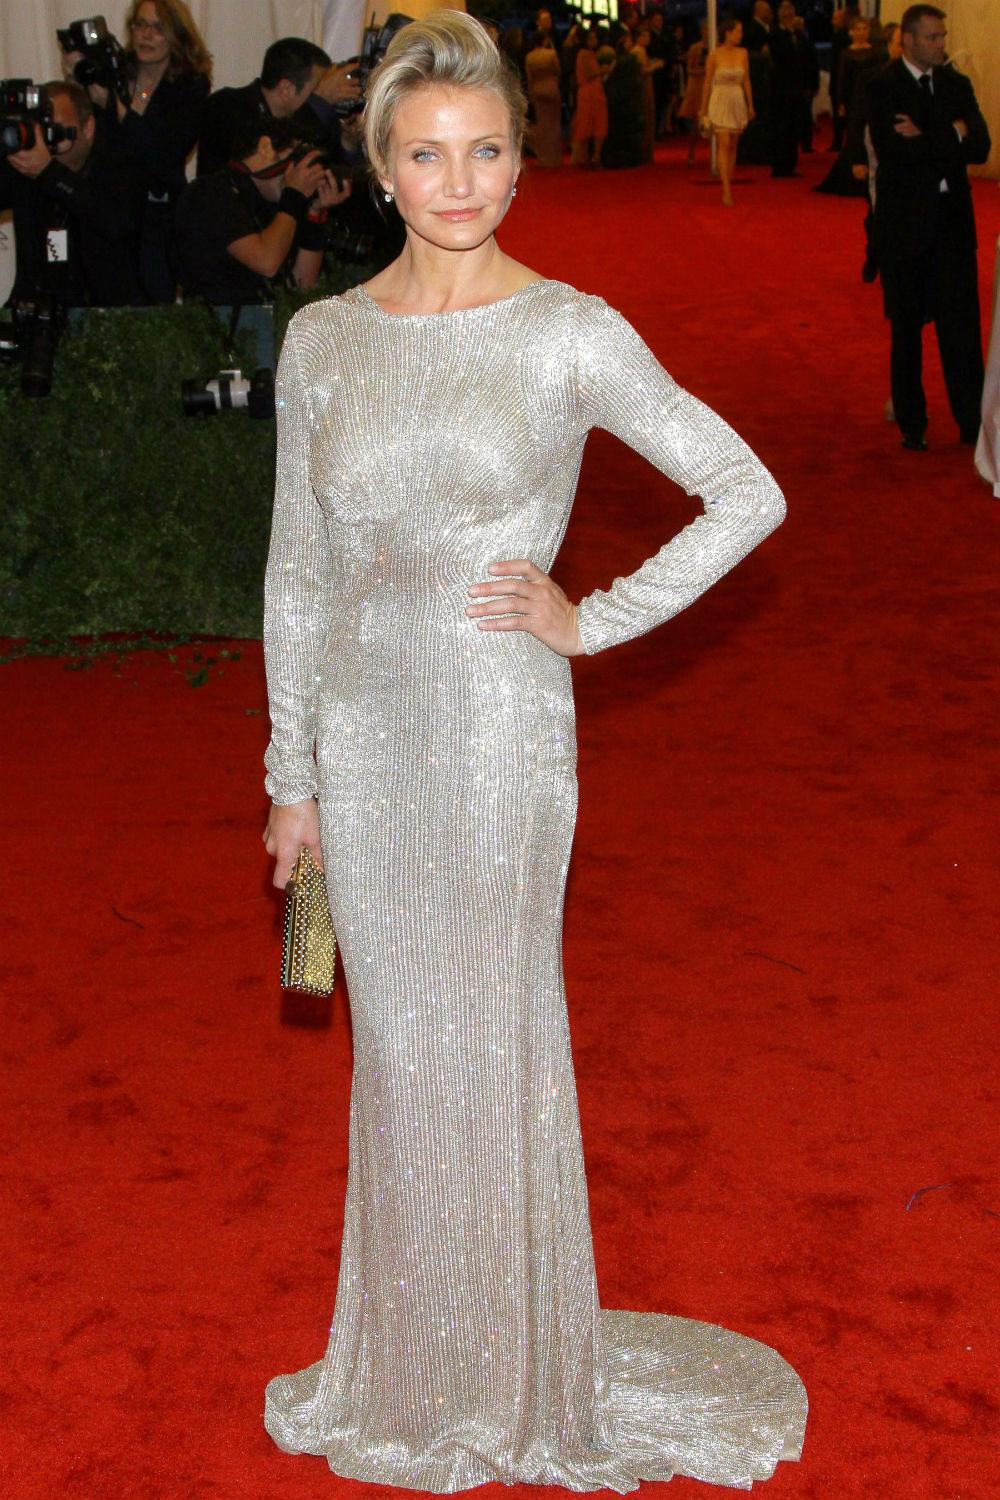 All the ways @CameronDiaz ever owned the red carpet http://t.co/Tdc81C3cPP http://t.co/rc6gzIaXsv